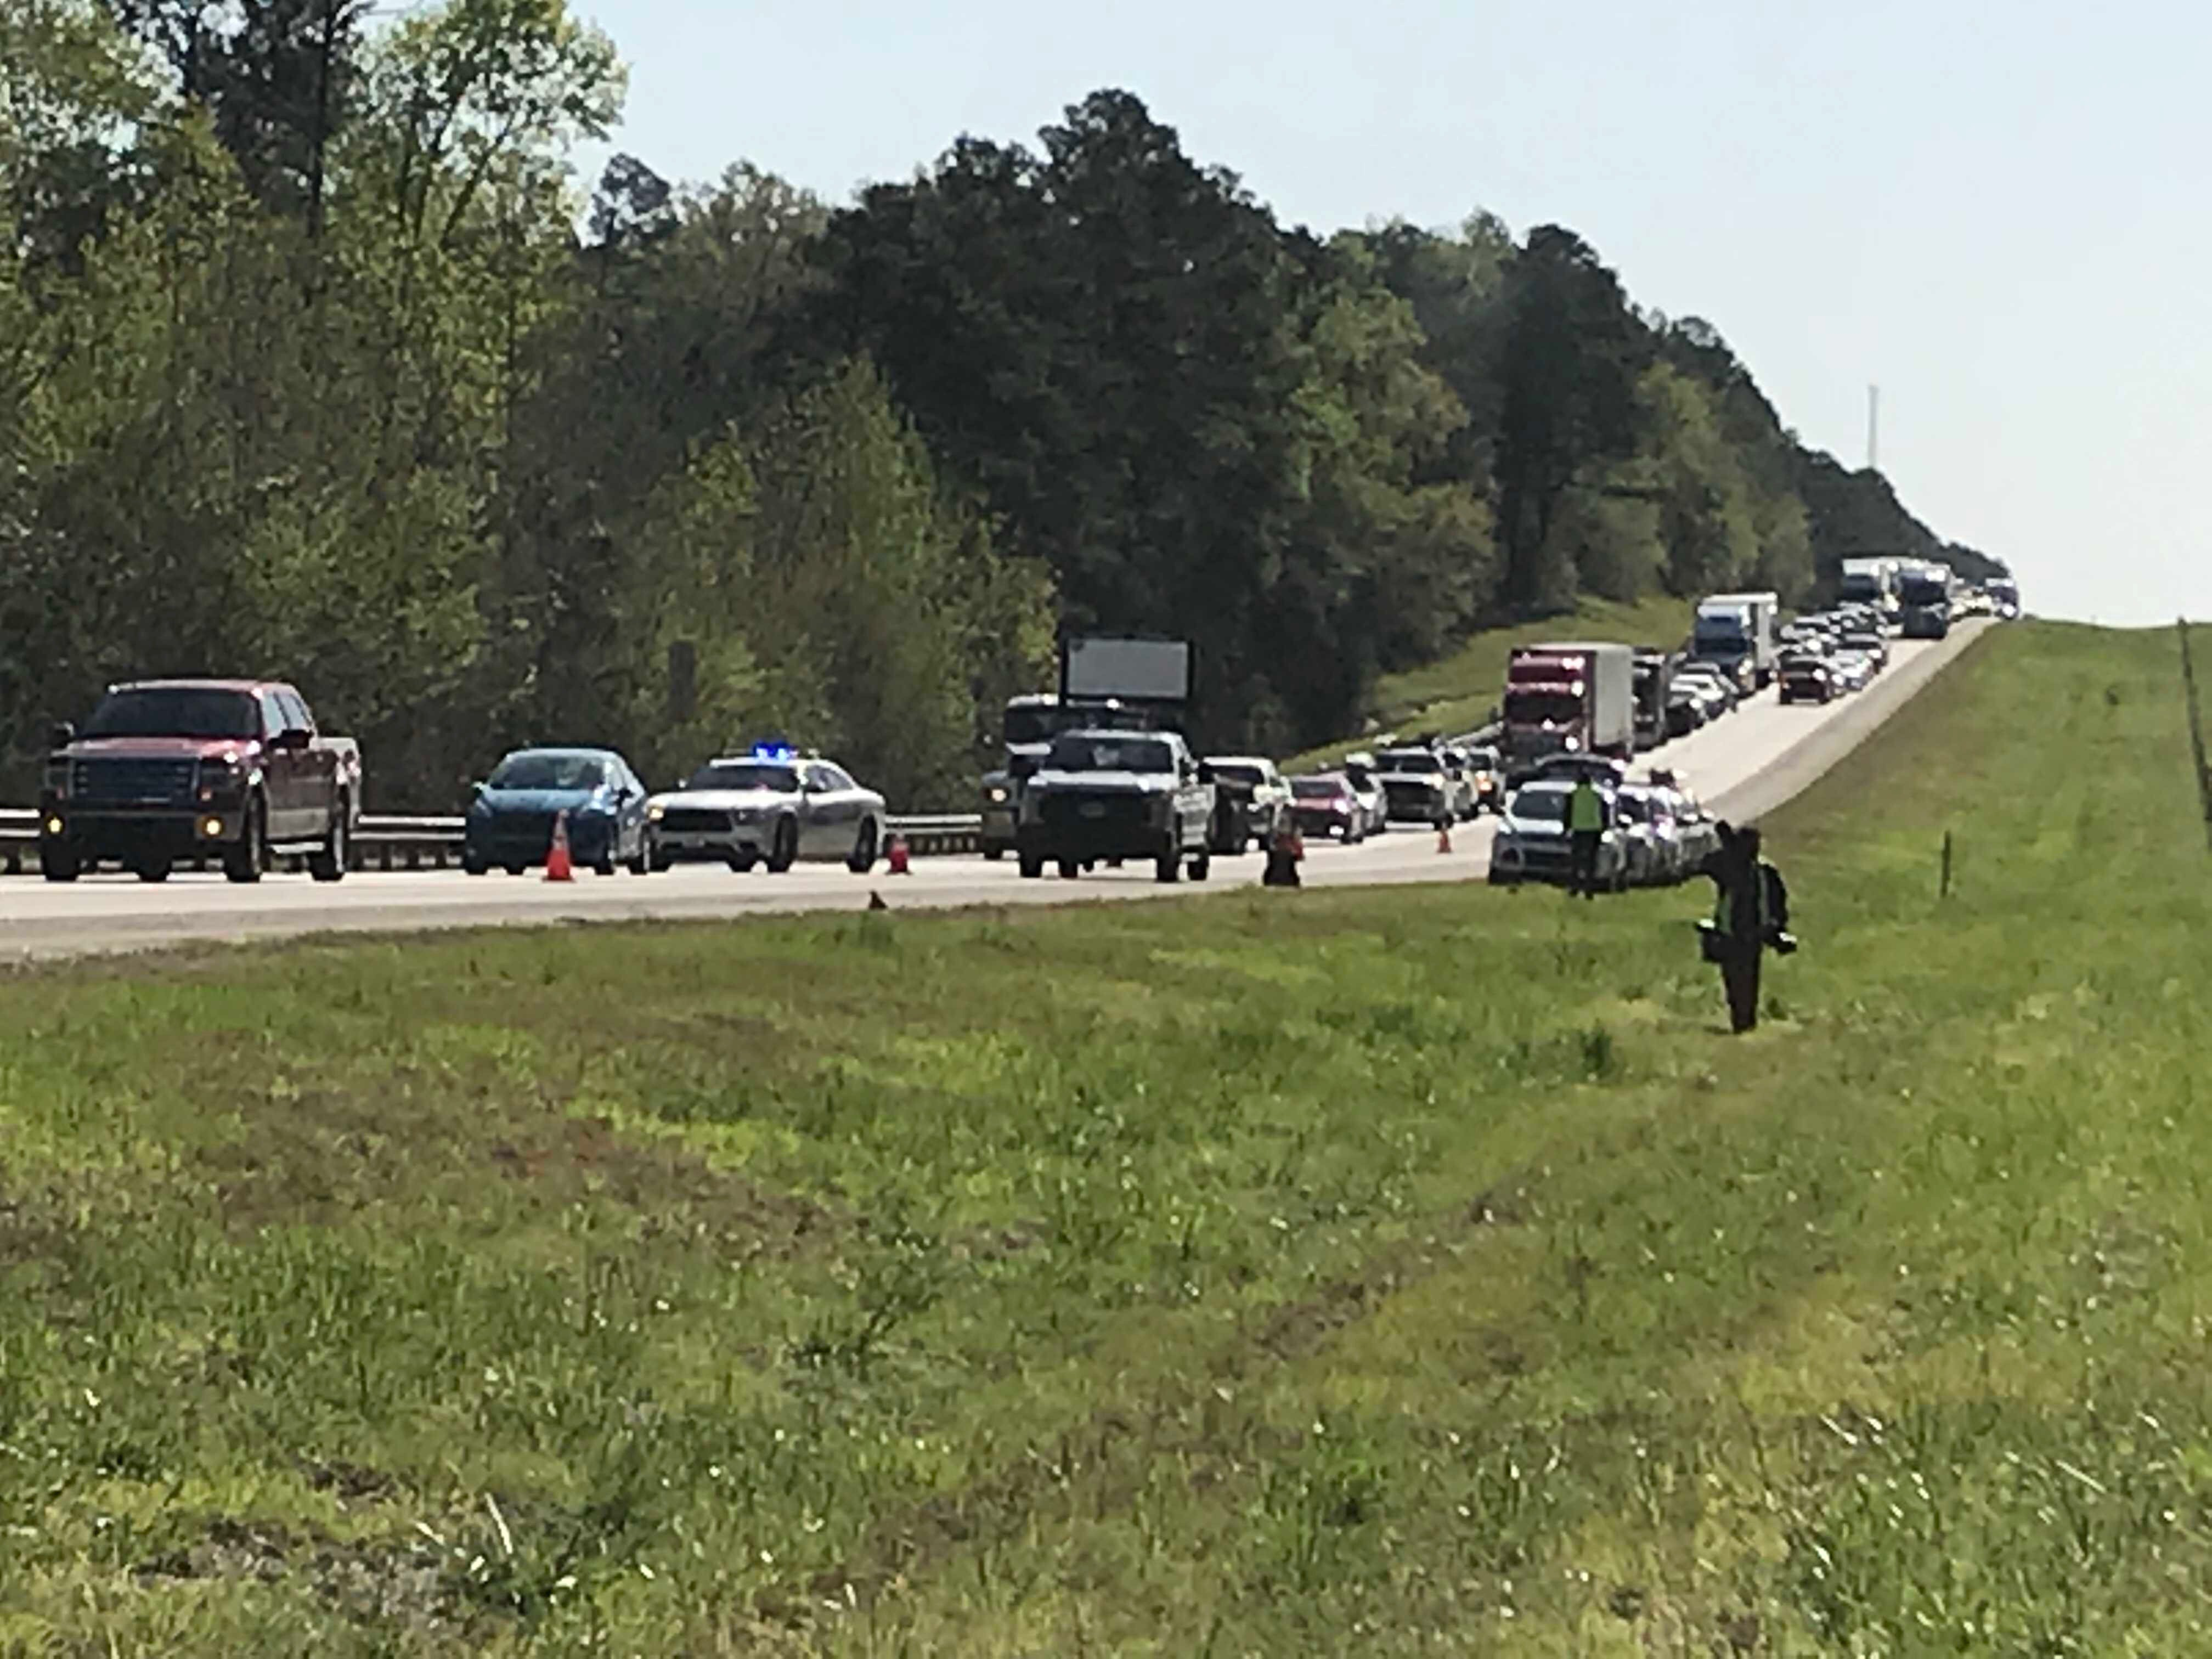 Traffic backed up on I-20 after bus headed to The Masters overturned 4/5/18 (WFXG)